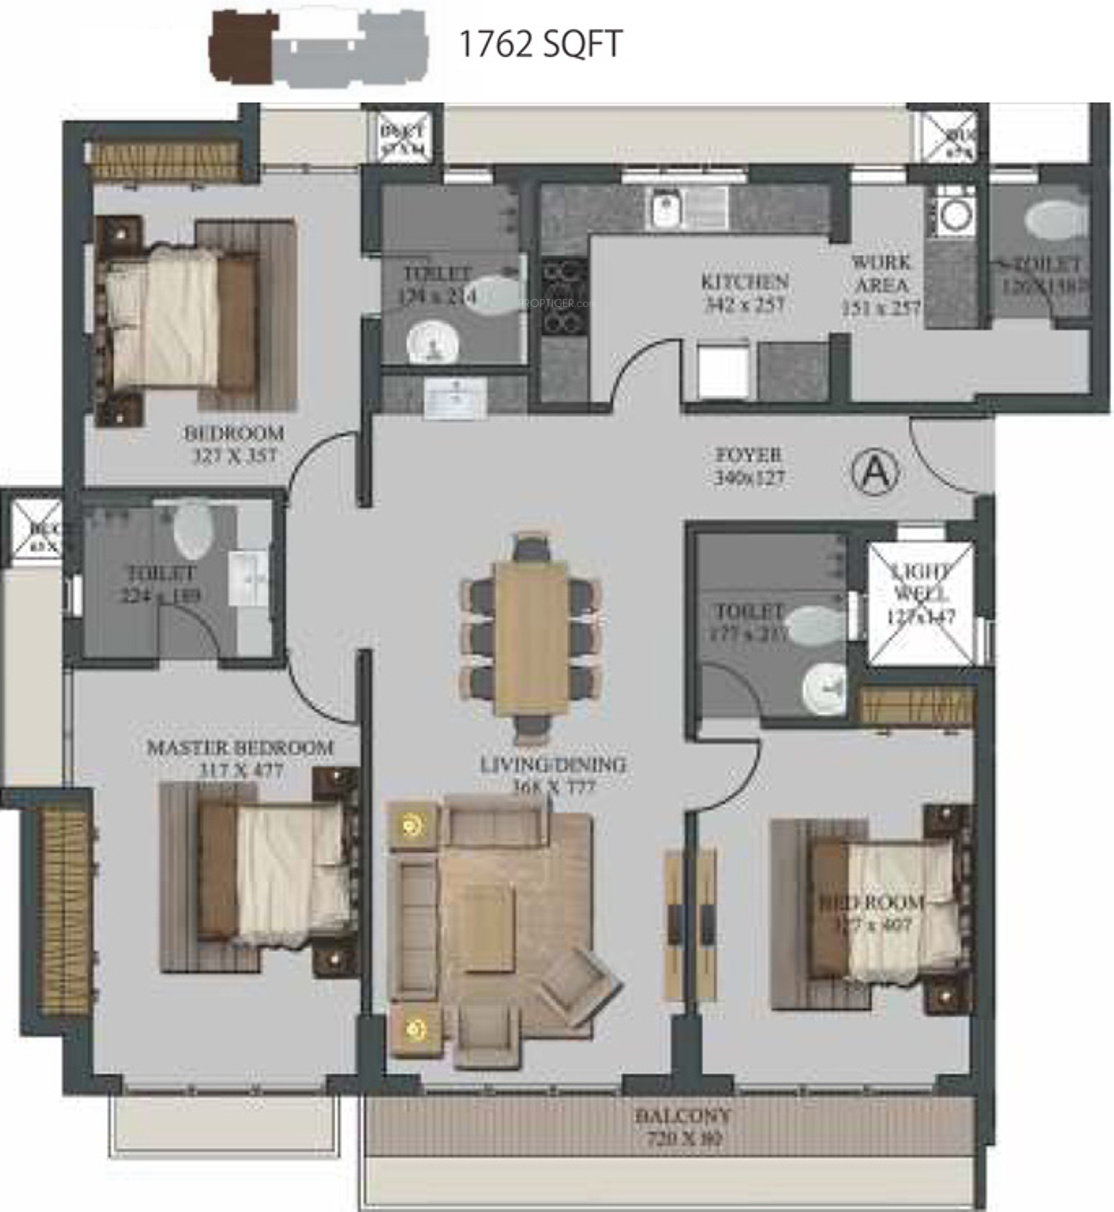 Malabar grand cedar in kowdiar trivandrum price location map floor plan reviews - Reasons may want switch upvc doors windows ...